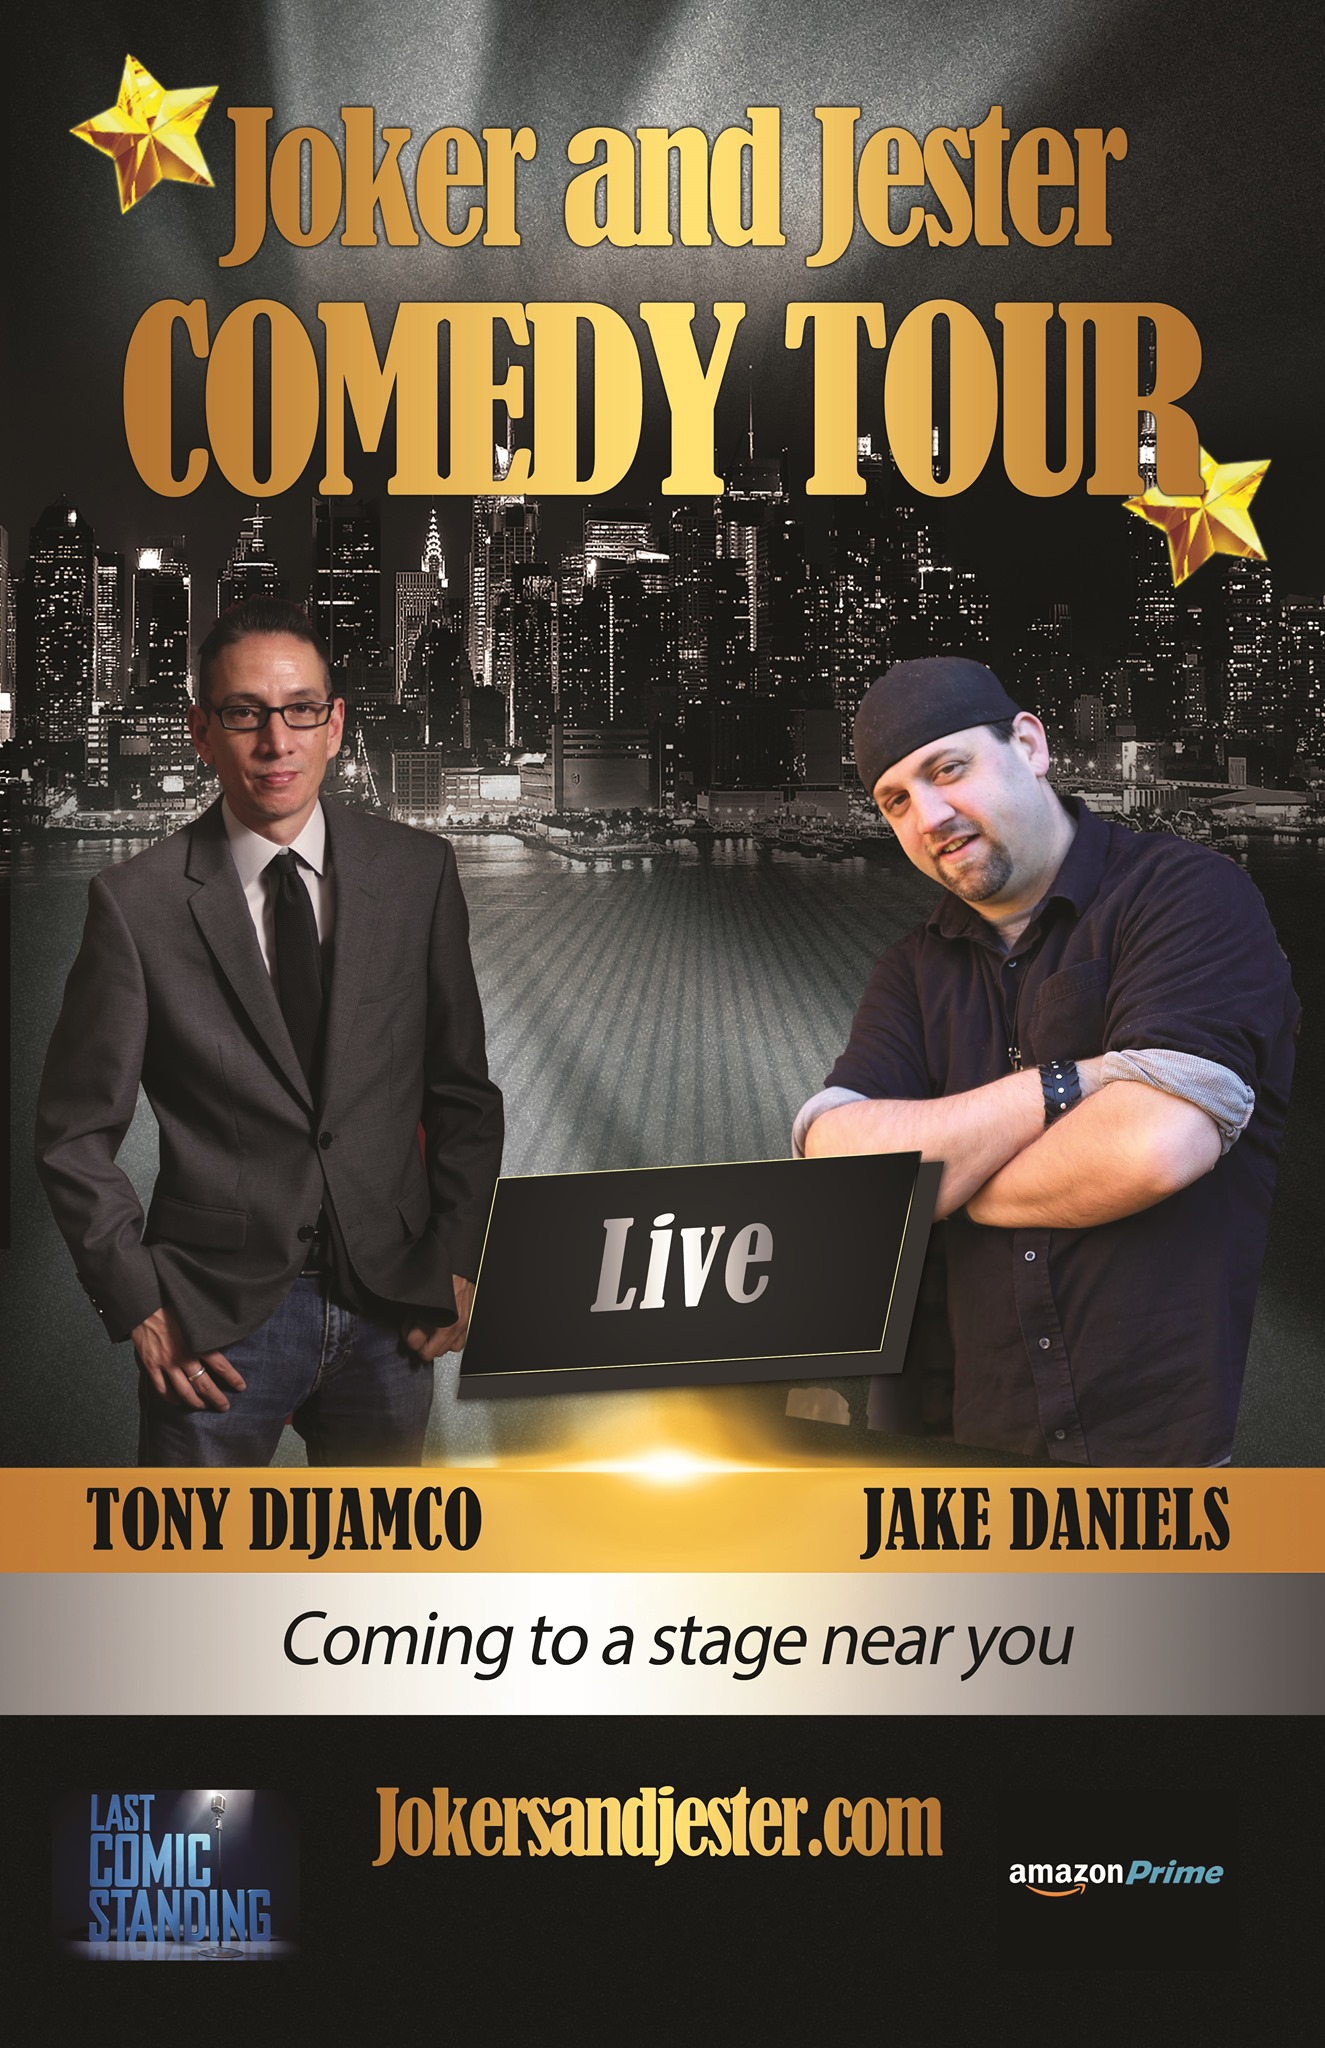 Joker and Jester Comedy Tour